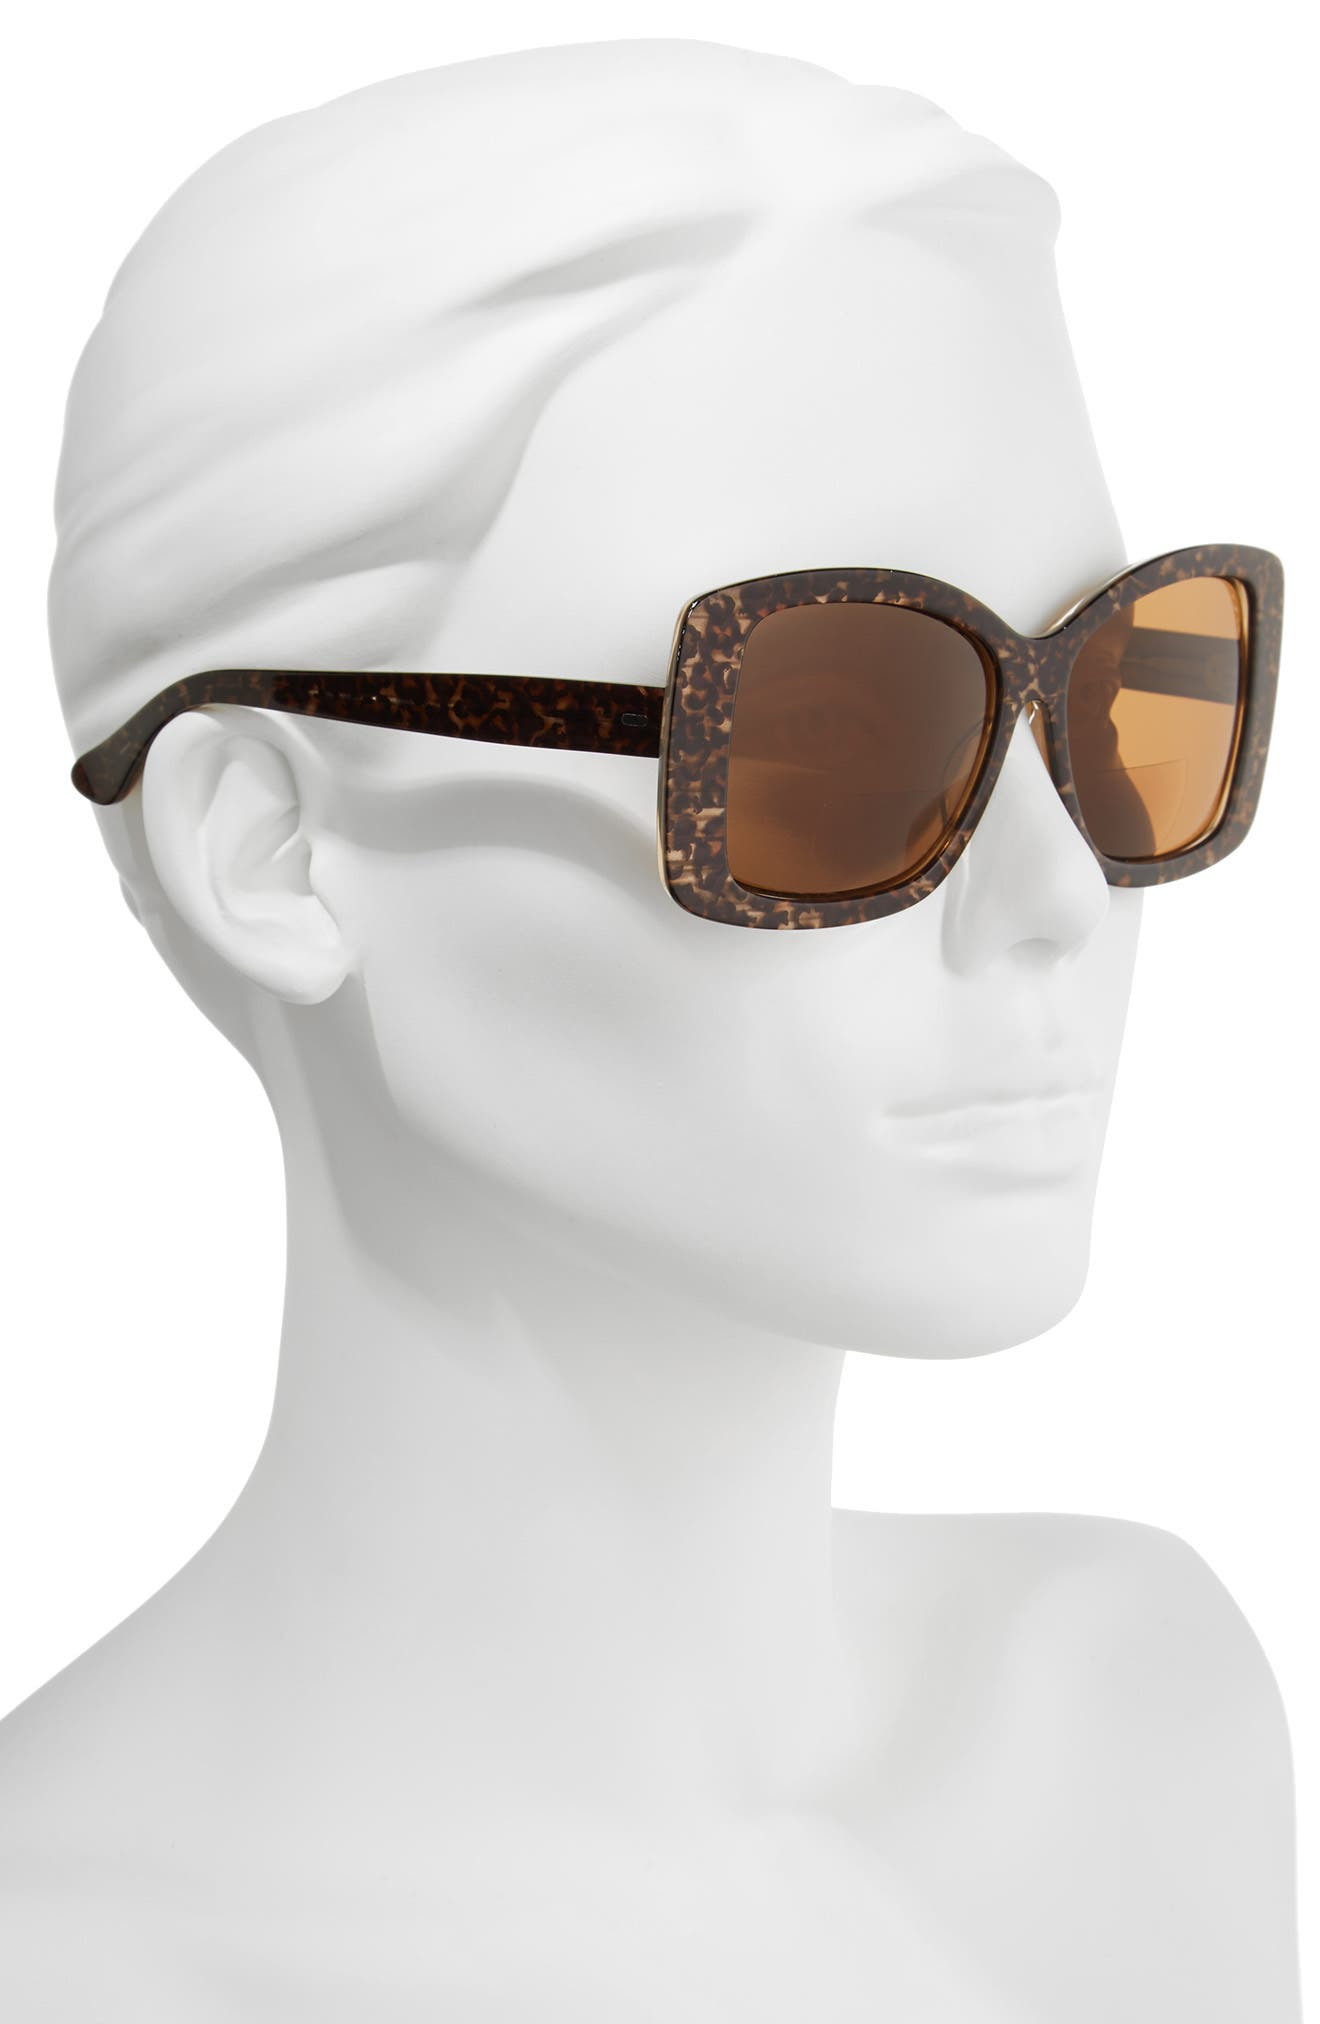 Brooklyn 54mm Reading Sunglasses,                             Alternate thumbnail 2, color,                             BROWN